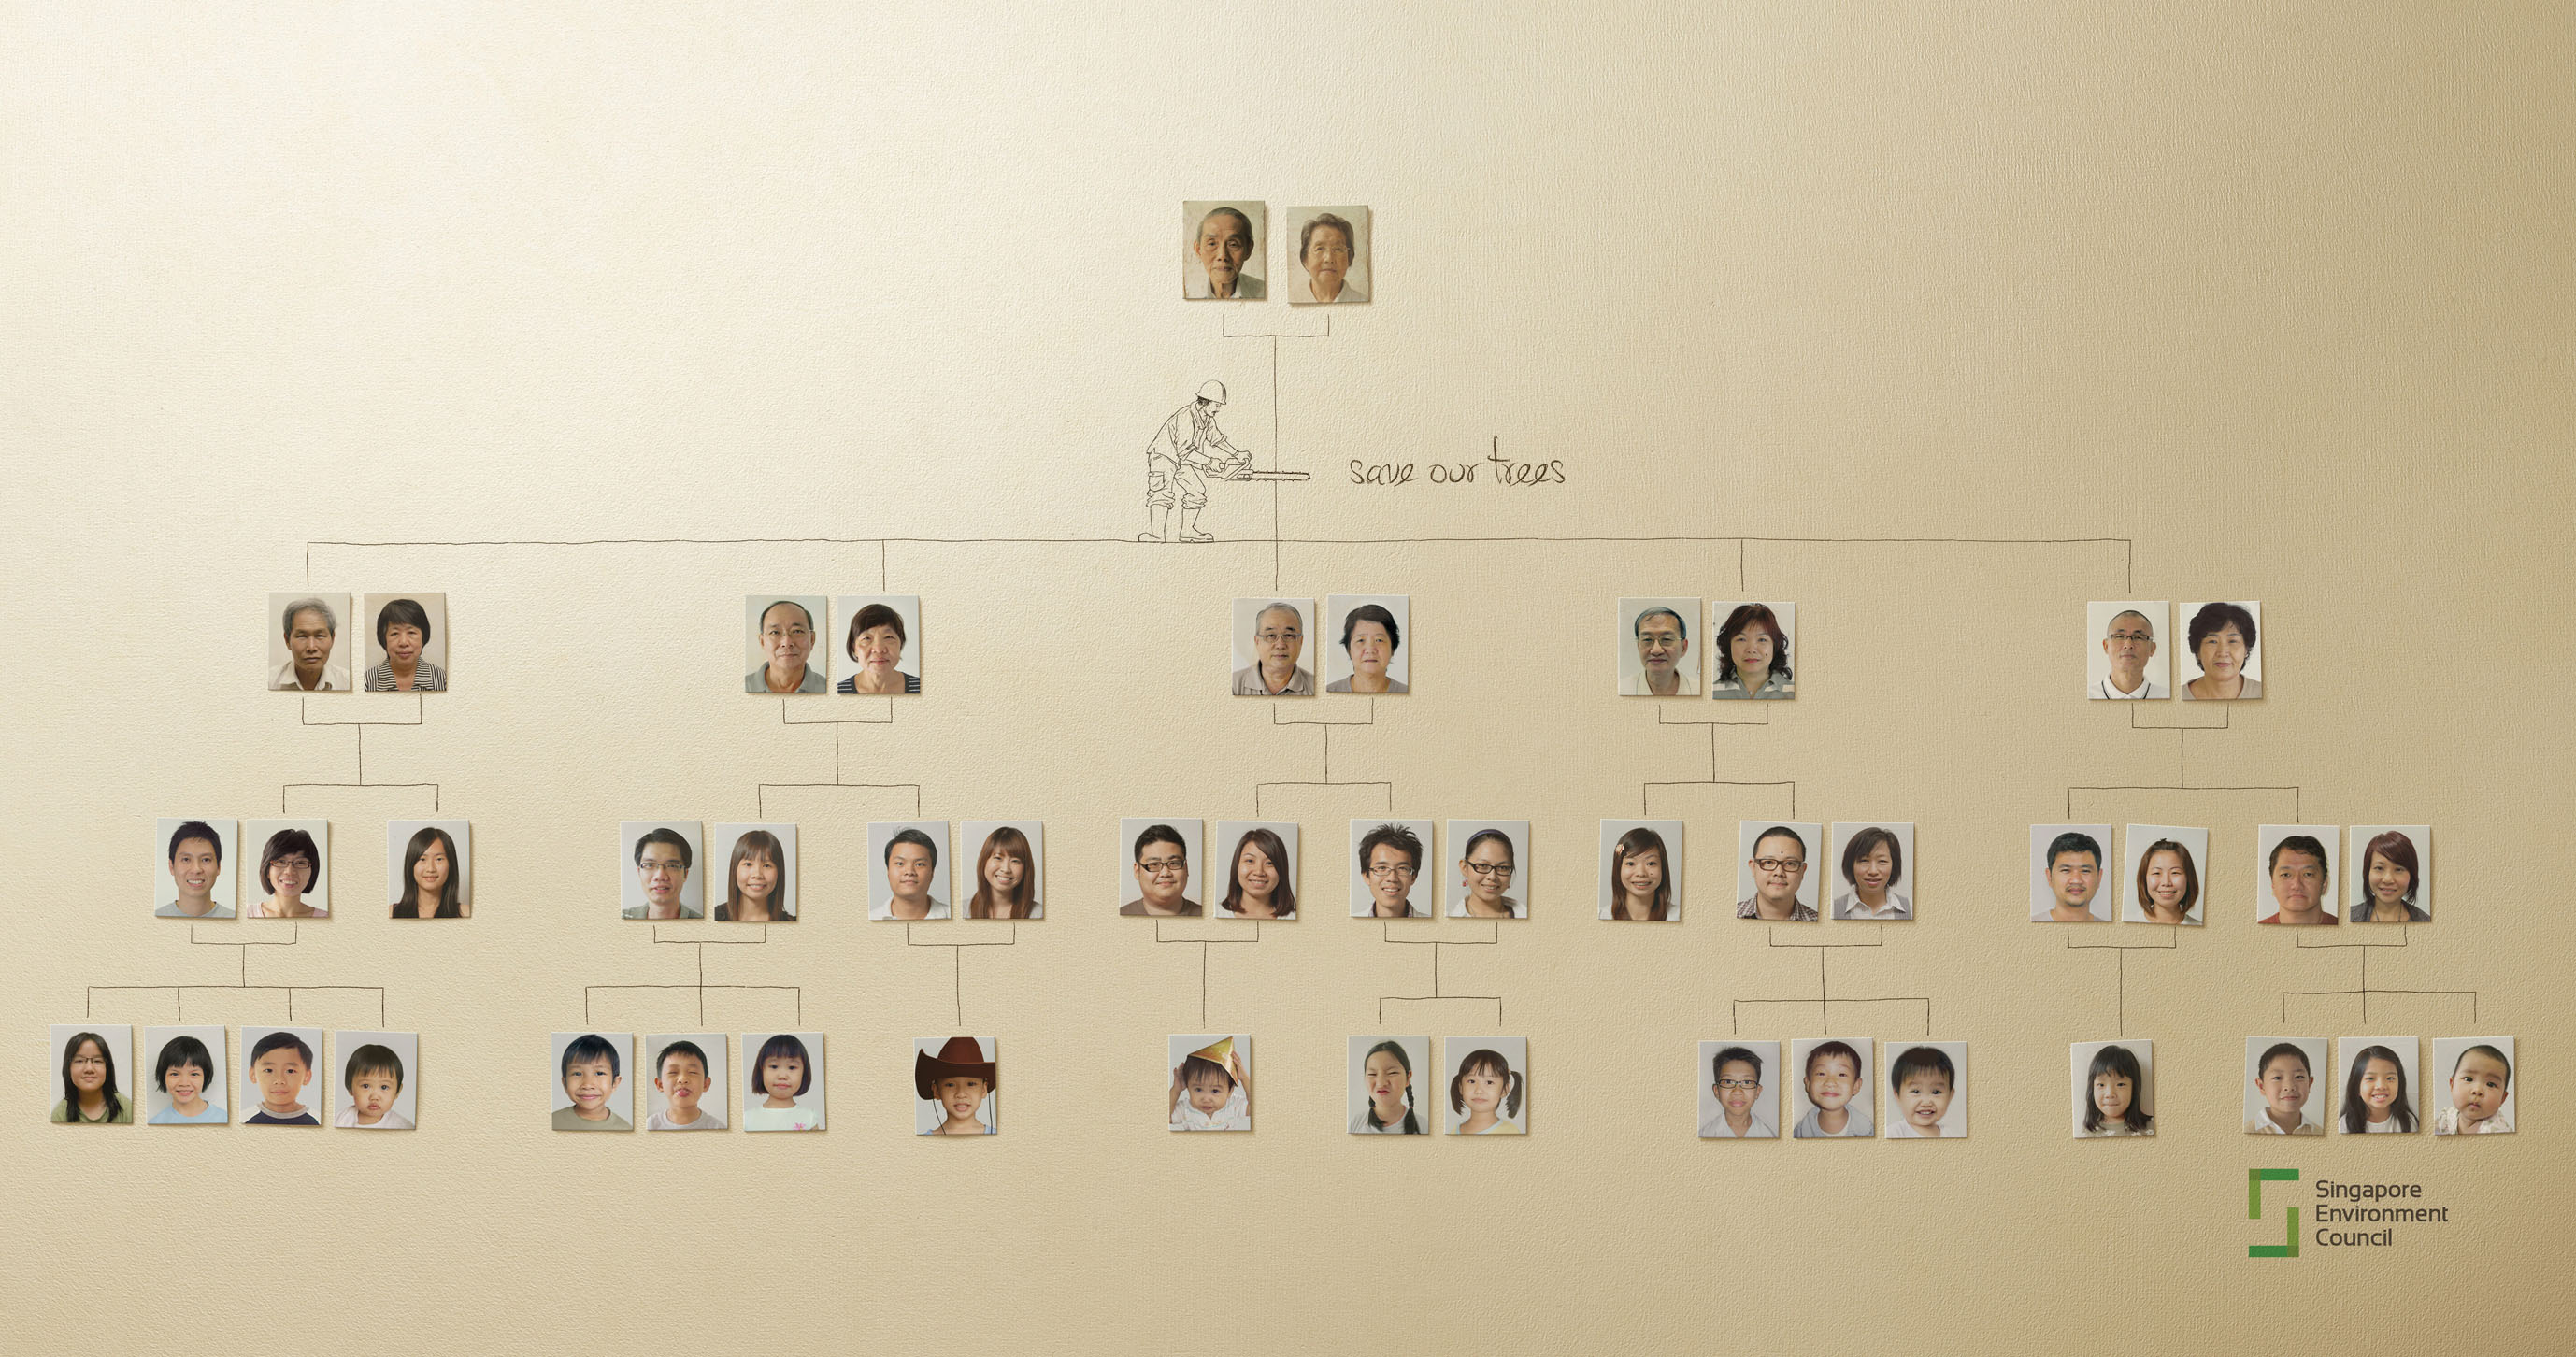 Outdoor Ad Singapore Environment Council Family Tree